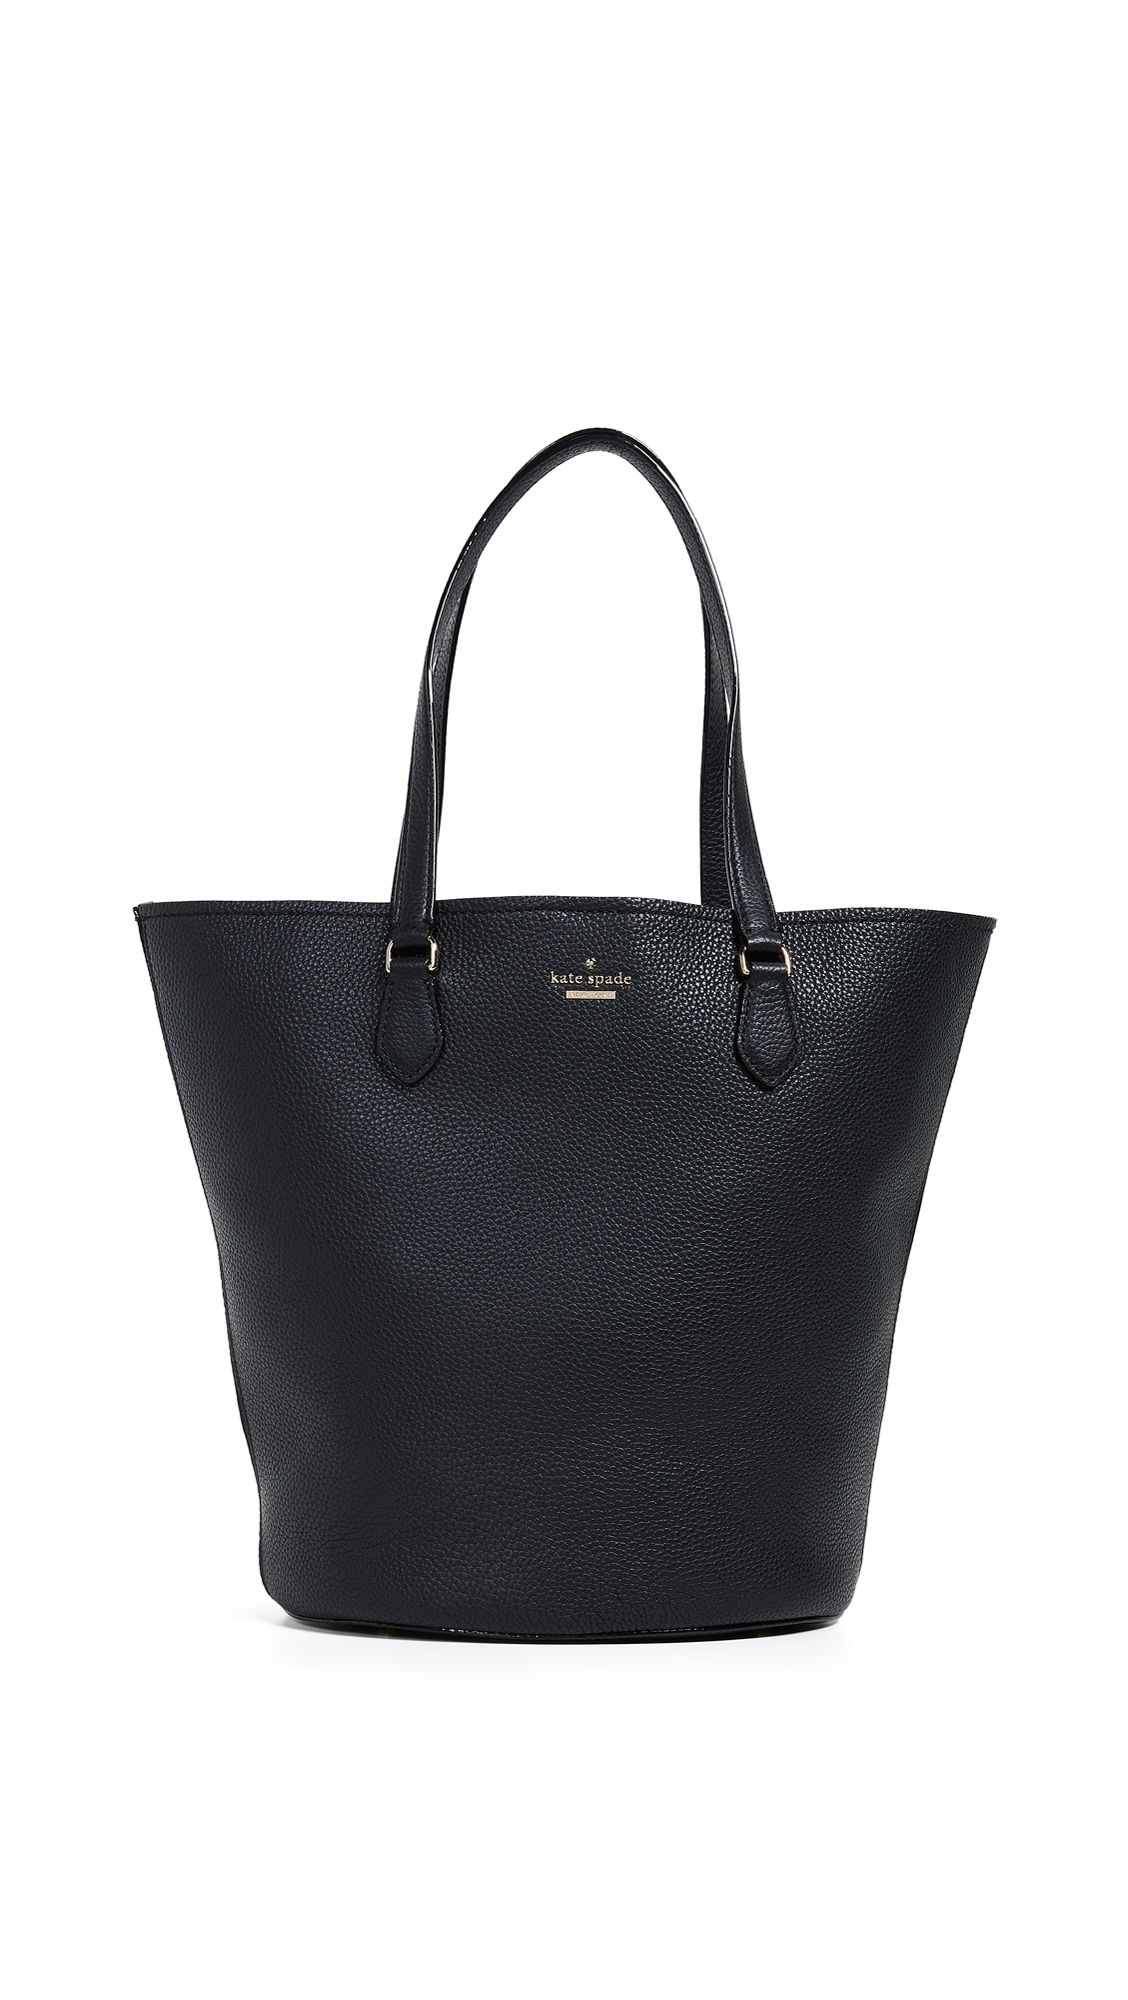 Jackson Street - Kristine Leather Tote - Black